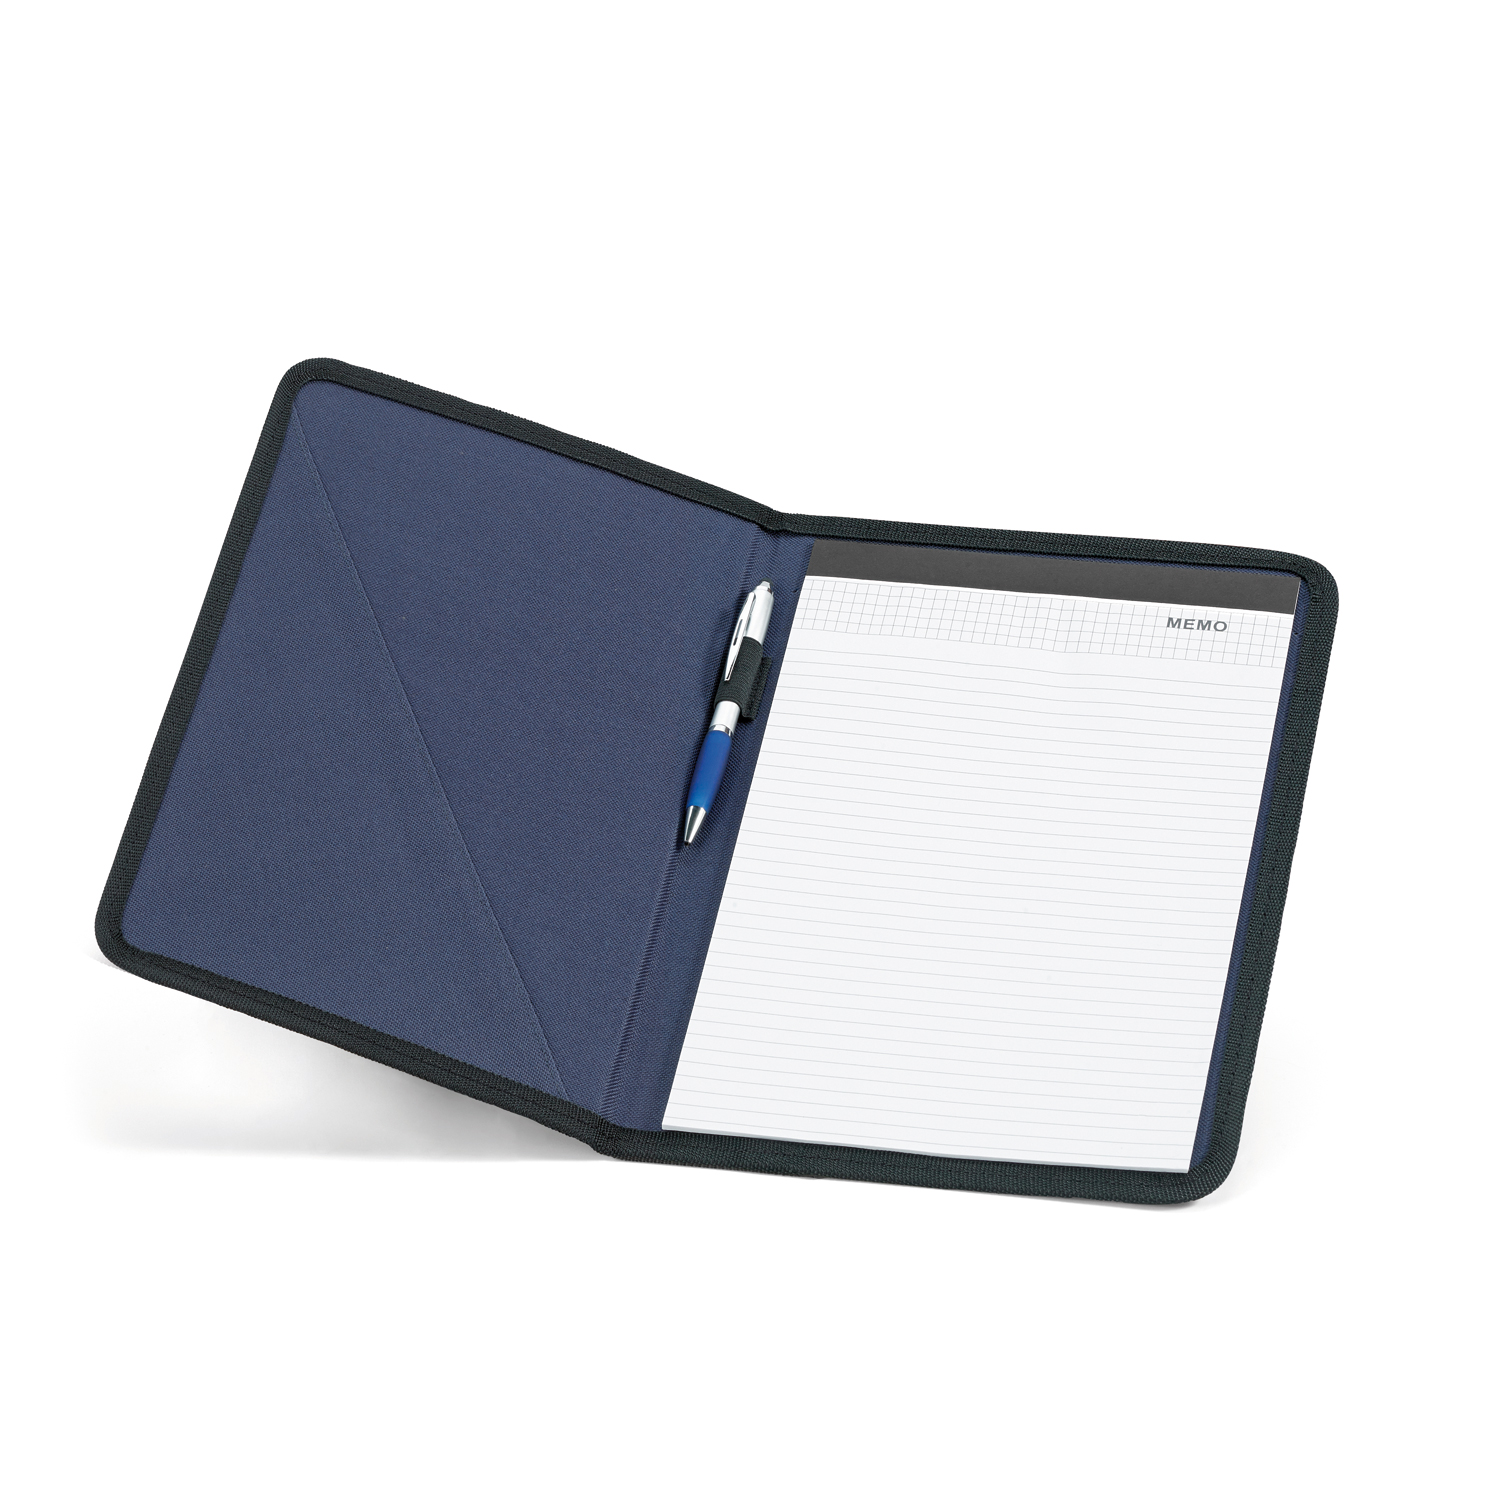 Folder 034 (A4 Document folder with 20 sheets inside) - hmi62034-08 (Dark Blue)